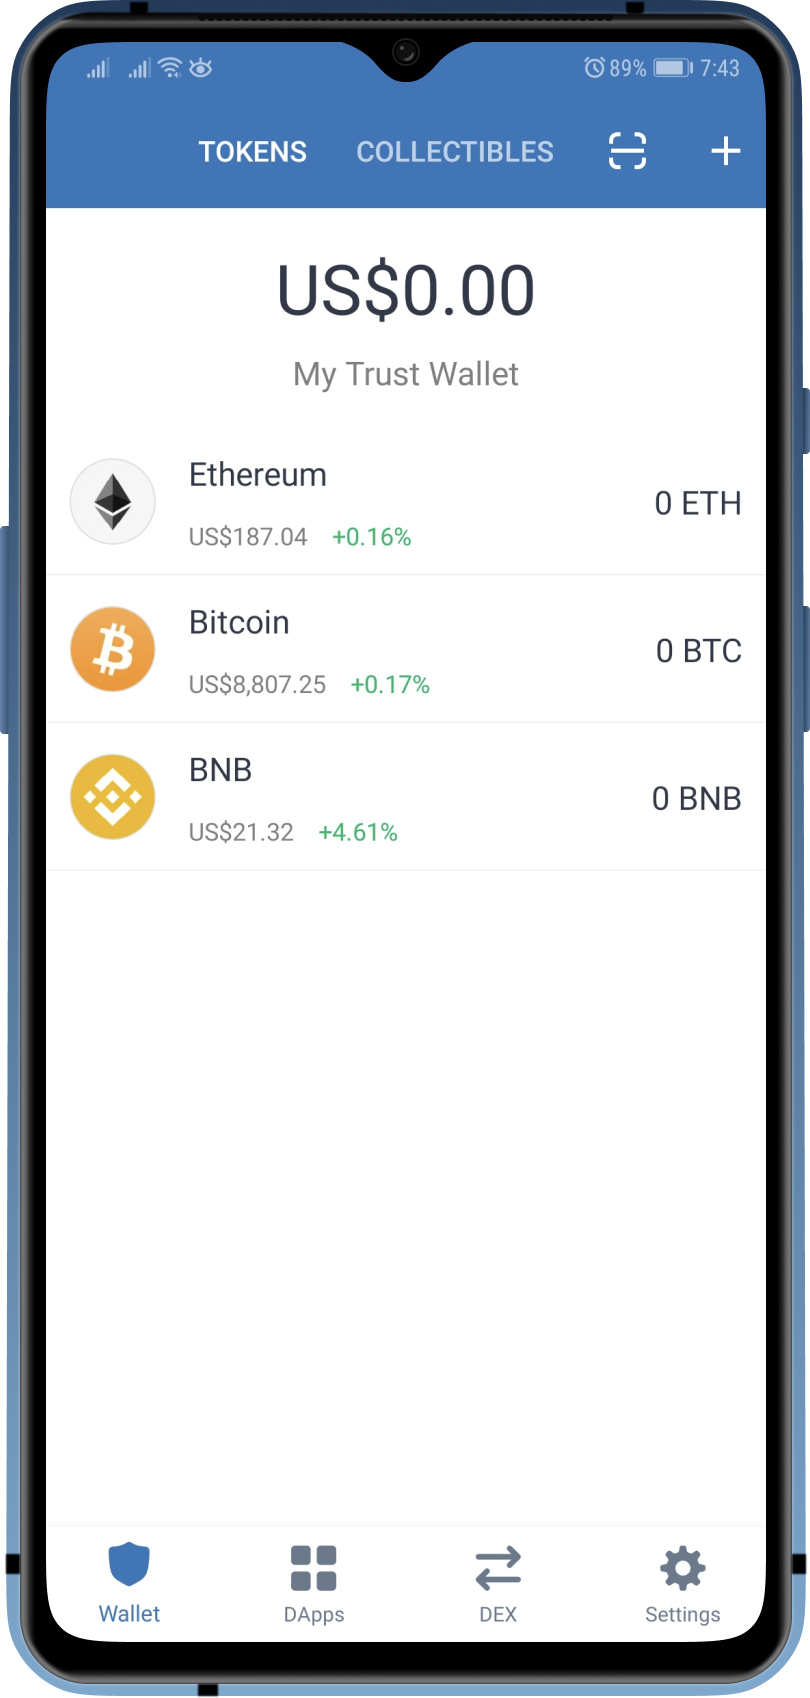 open source multi-cryptocurrency wallet